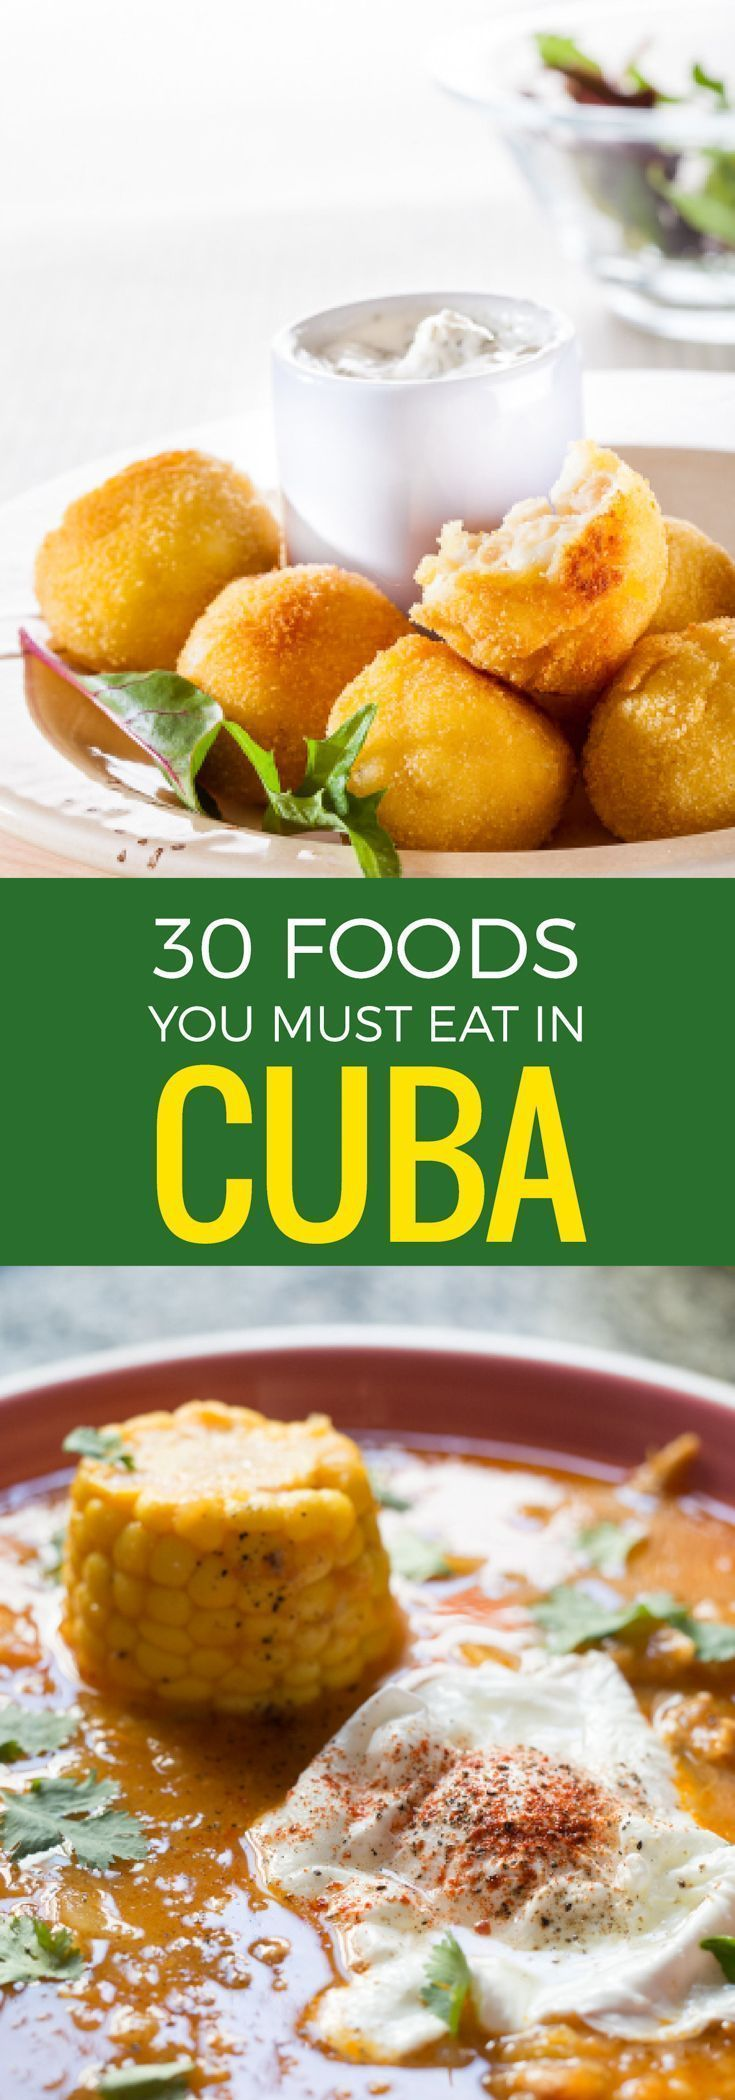 Best 25 cayo coco ideas on pinterest cayo coco cuba for Authentic cuban cuisine